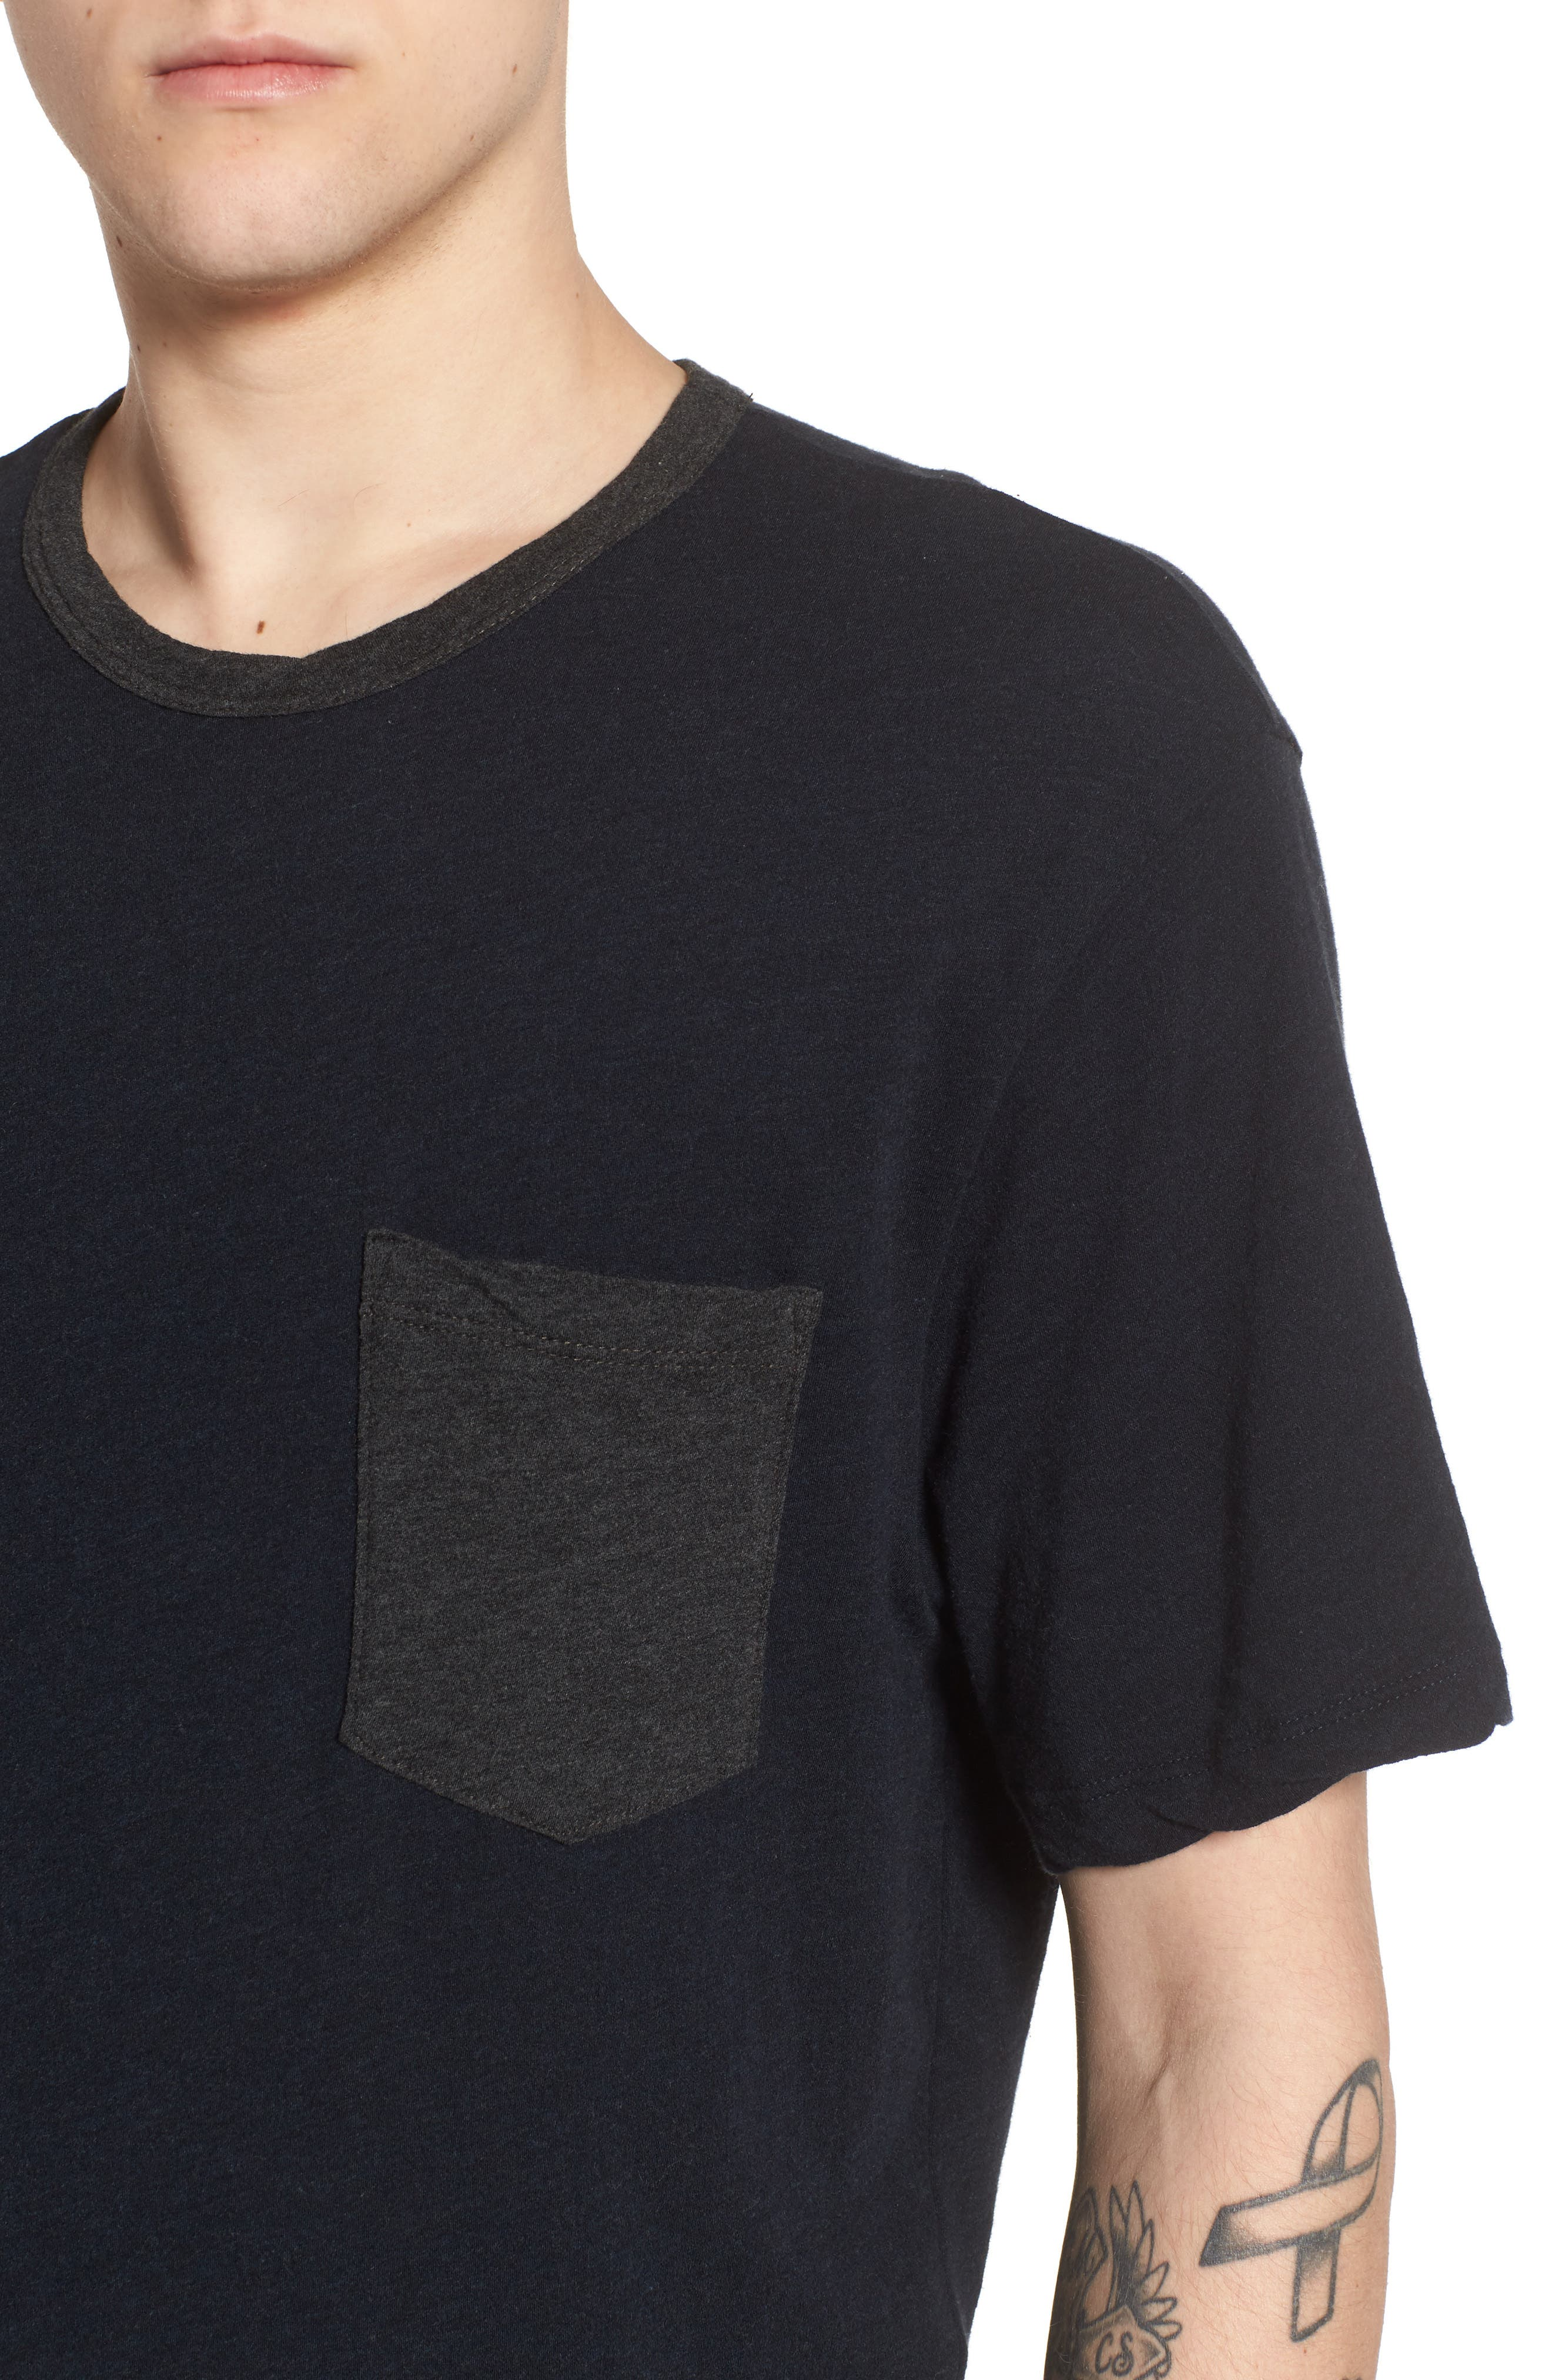 JAMES PERSE,                             Two-Tone Pocket T-Shirt,                             Alternate thumbnail 4, color,                             001